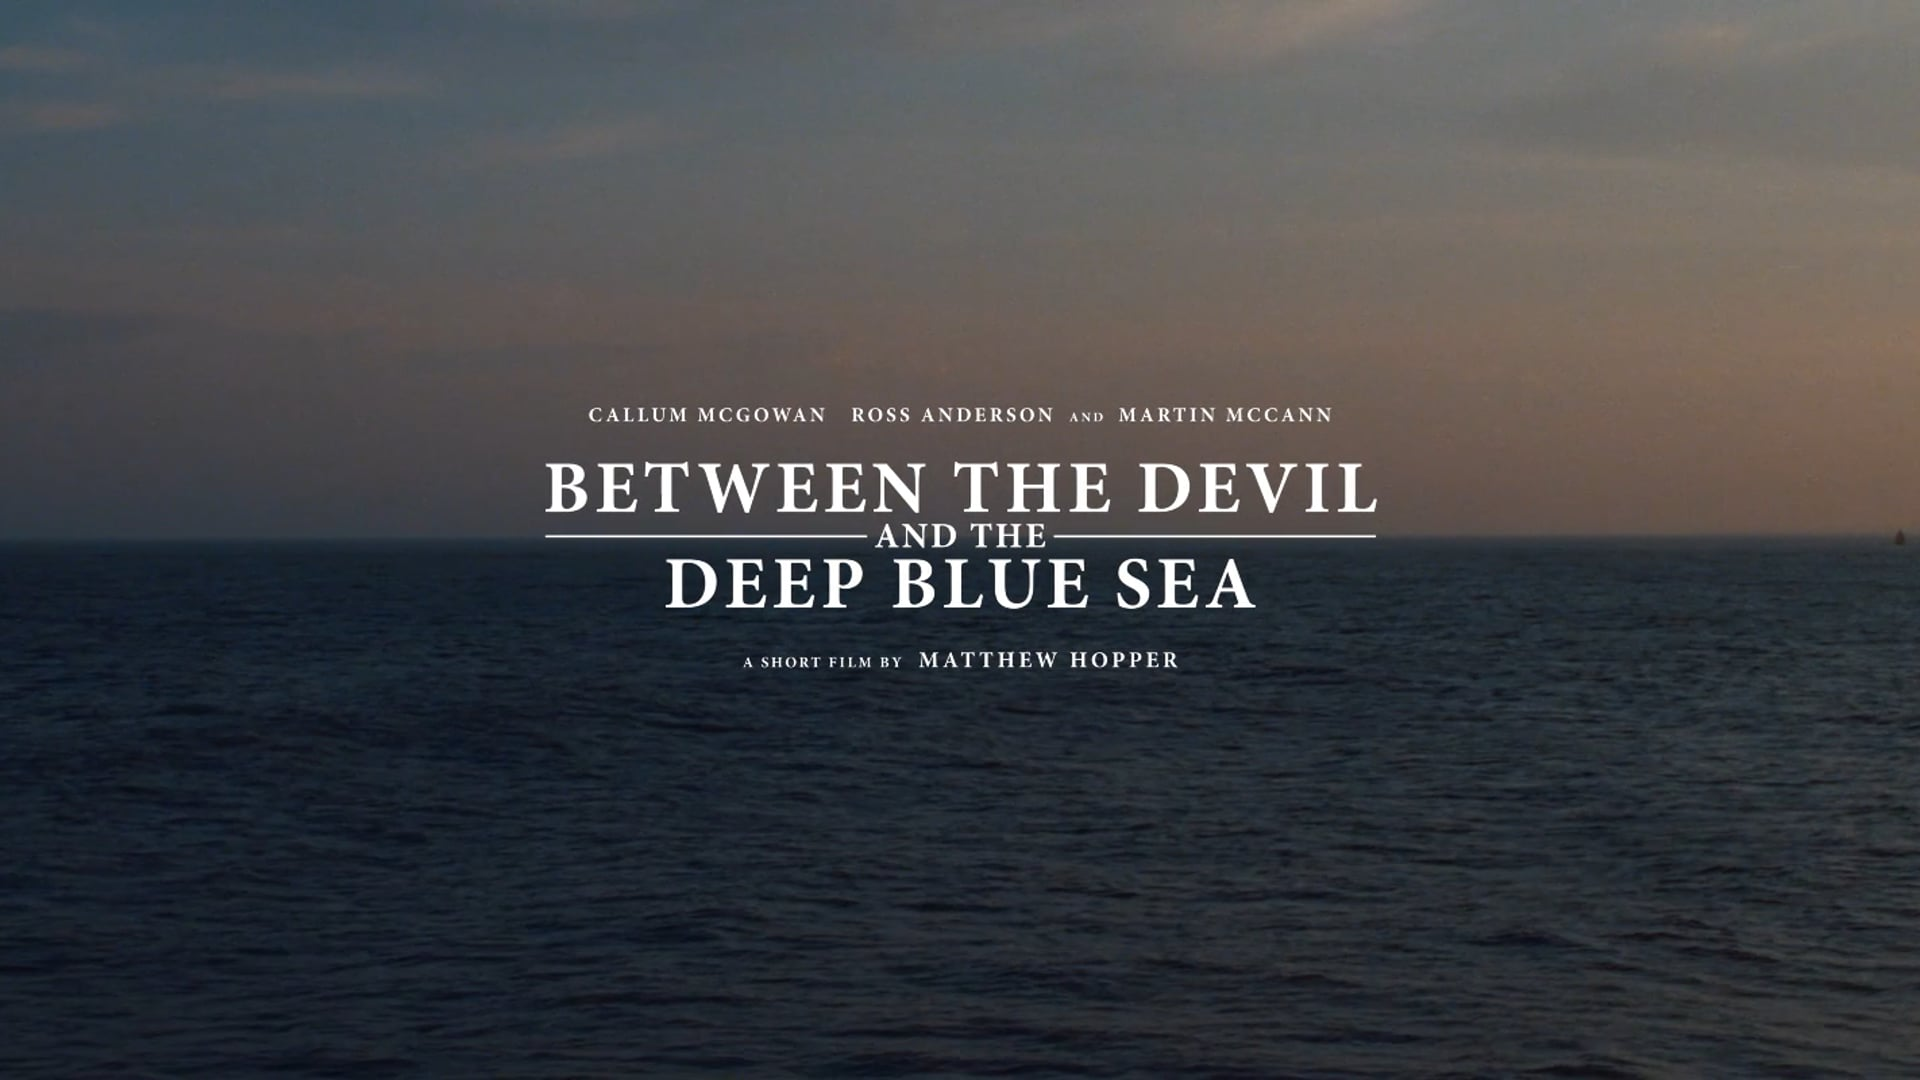 BETWEEN THE DEVIL AND THE DEEP BLUE SEA - TRAILER